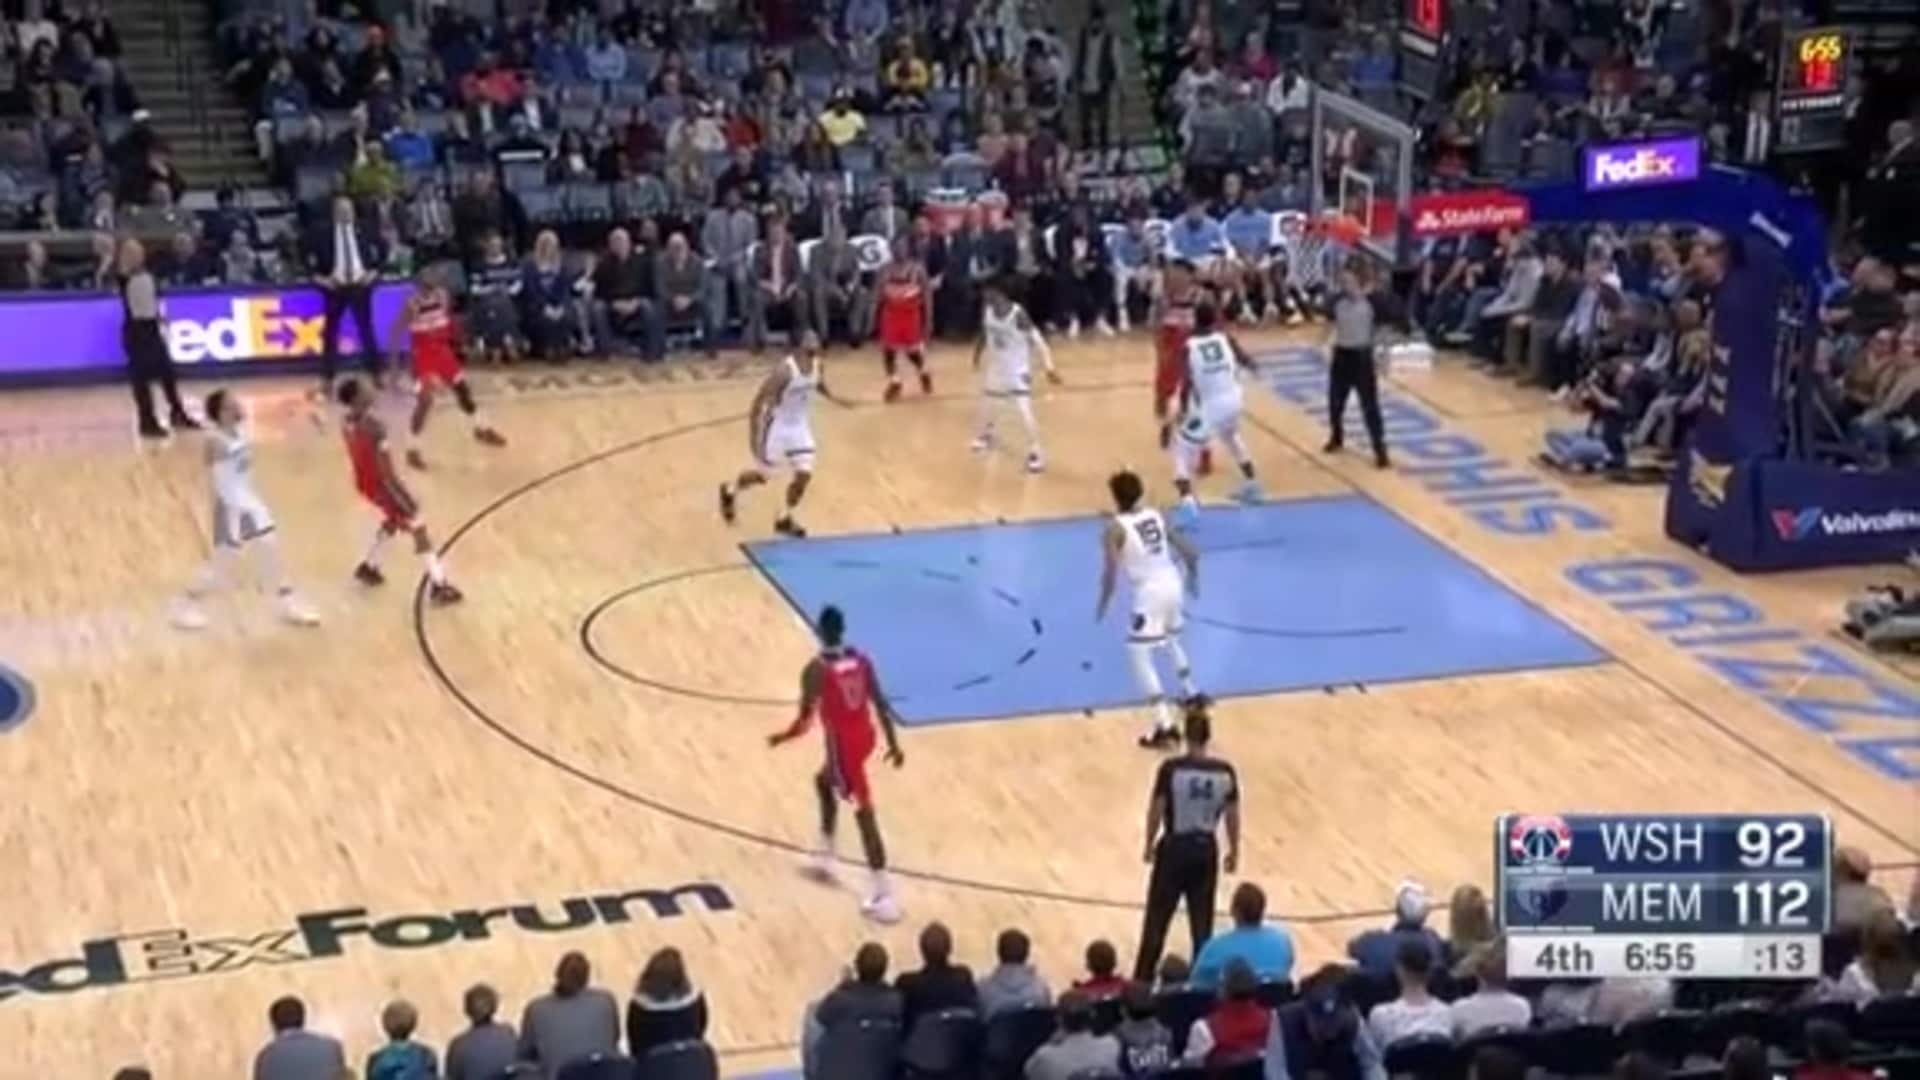 Highlights: Bradley Beal vs. Grizzlies - 12/14/19